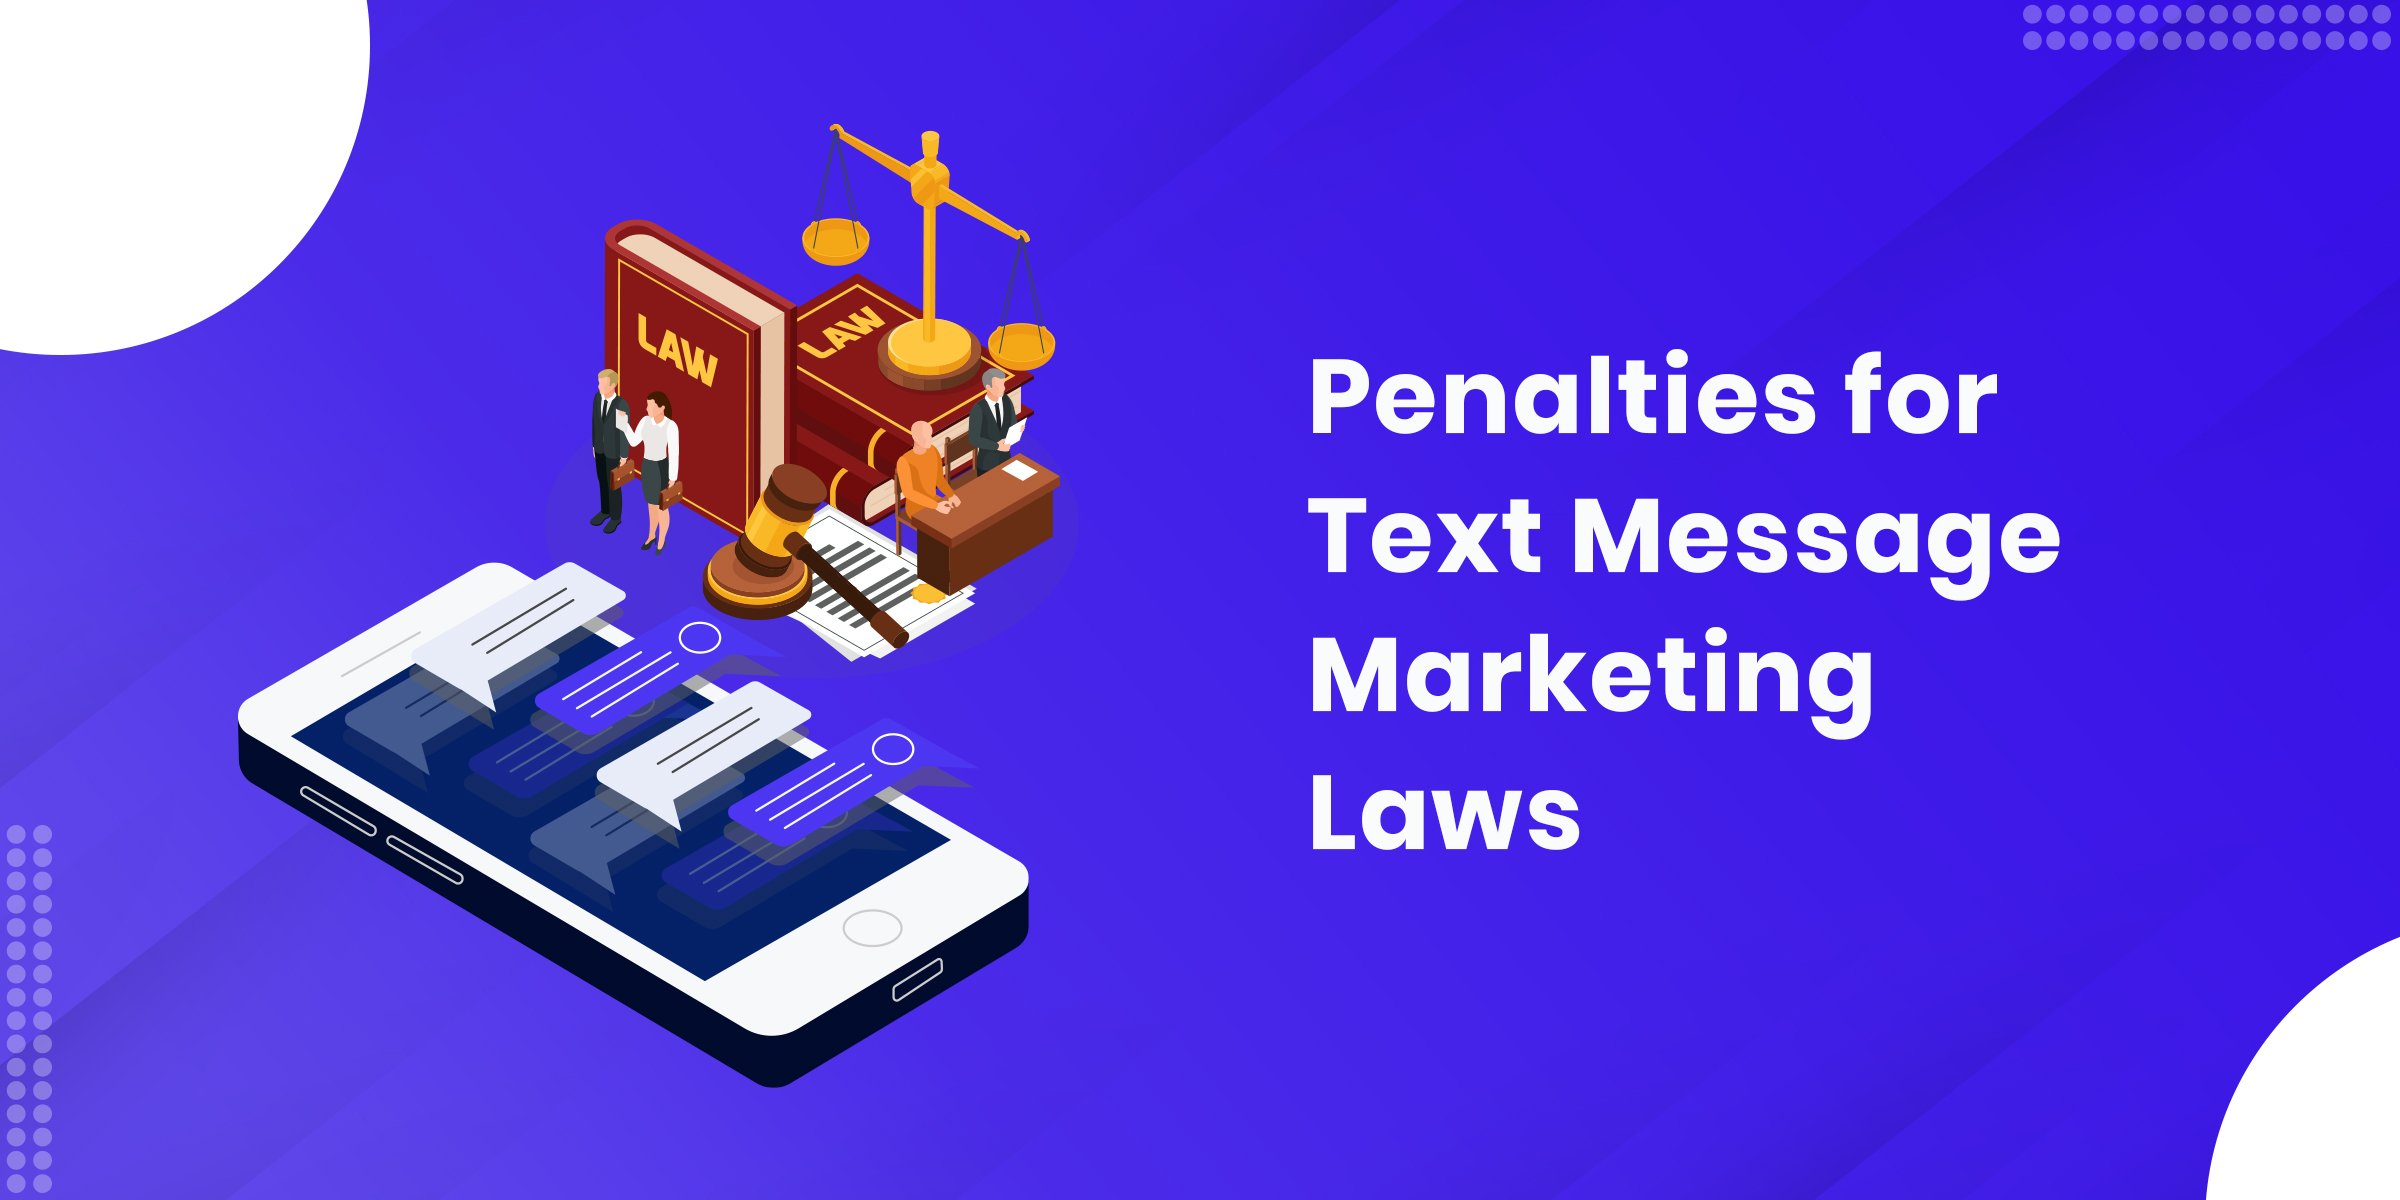 Penalties for Text Message Marketing Laws